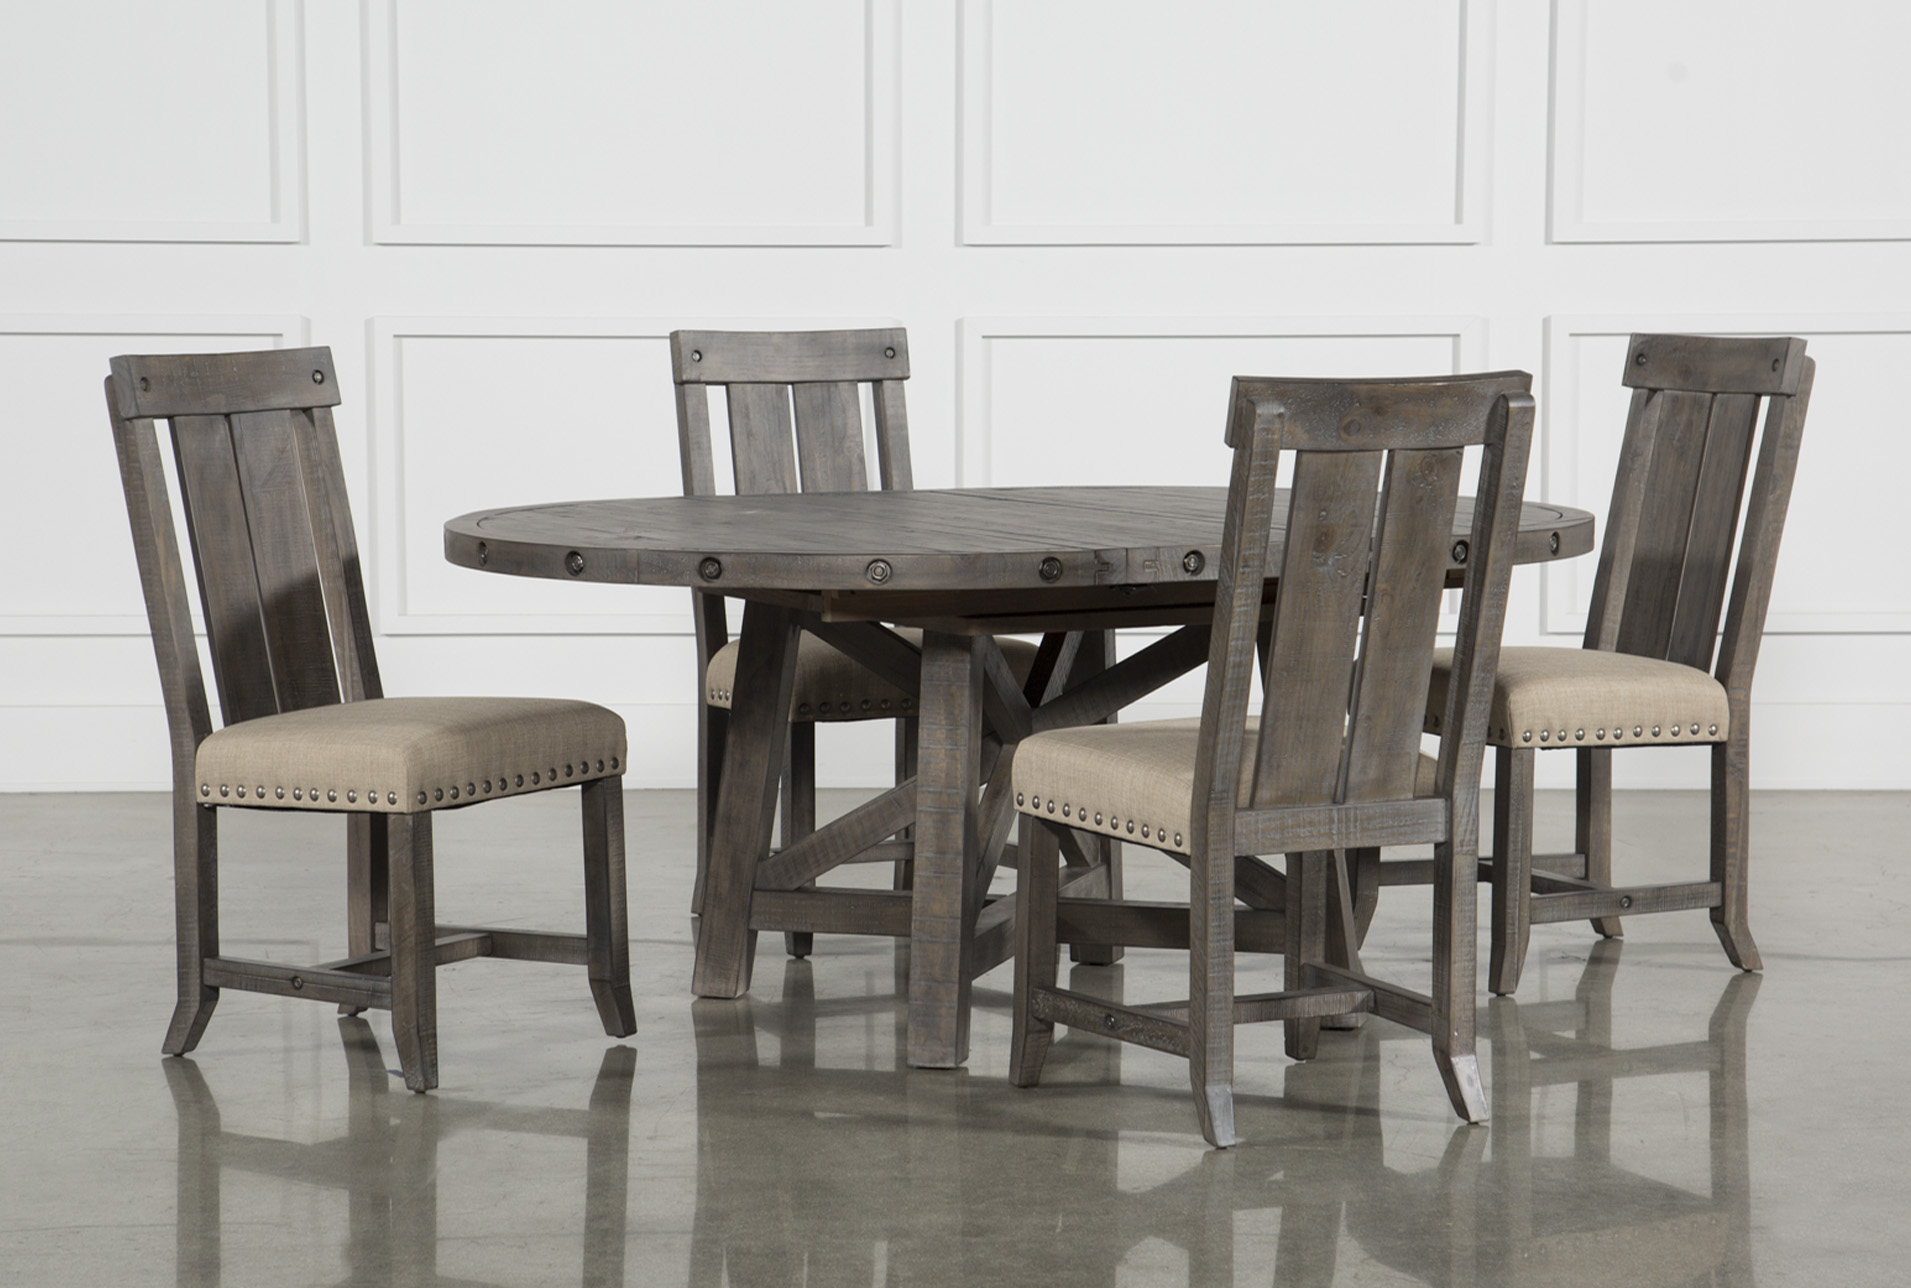 Jaxon Grey 5 Piece Round Extension Dining Set W/Wood Chairs | Living